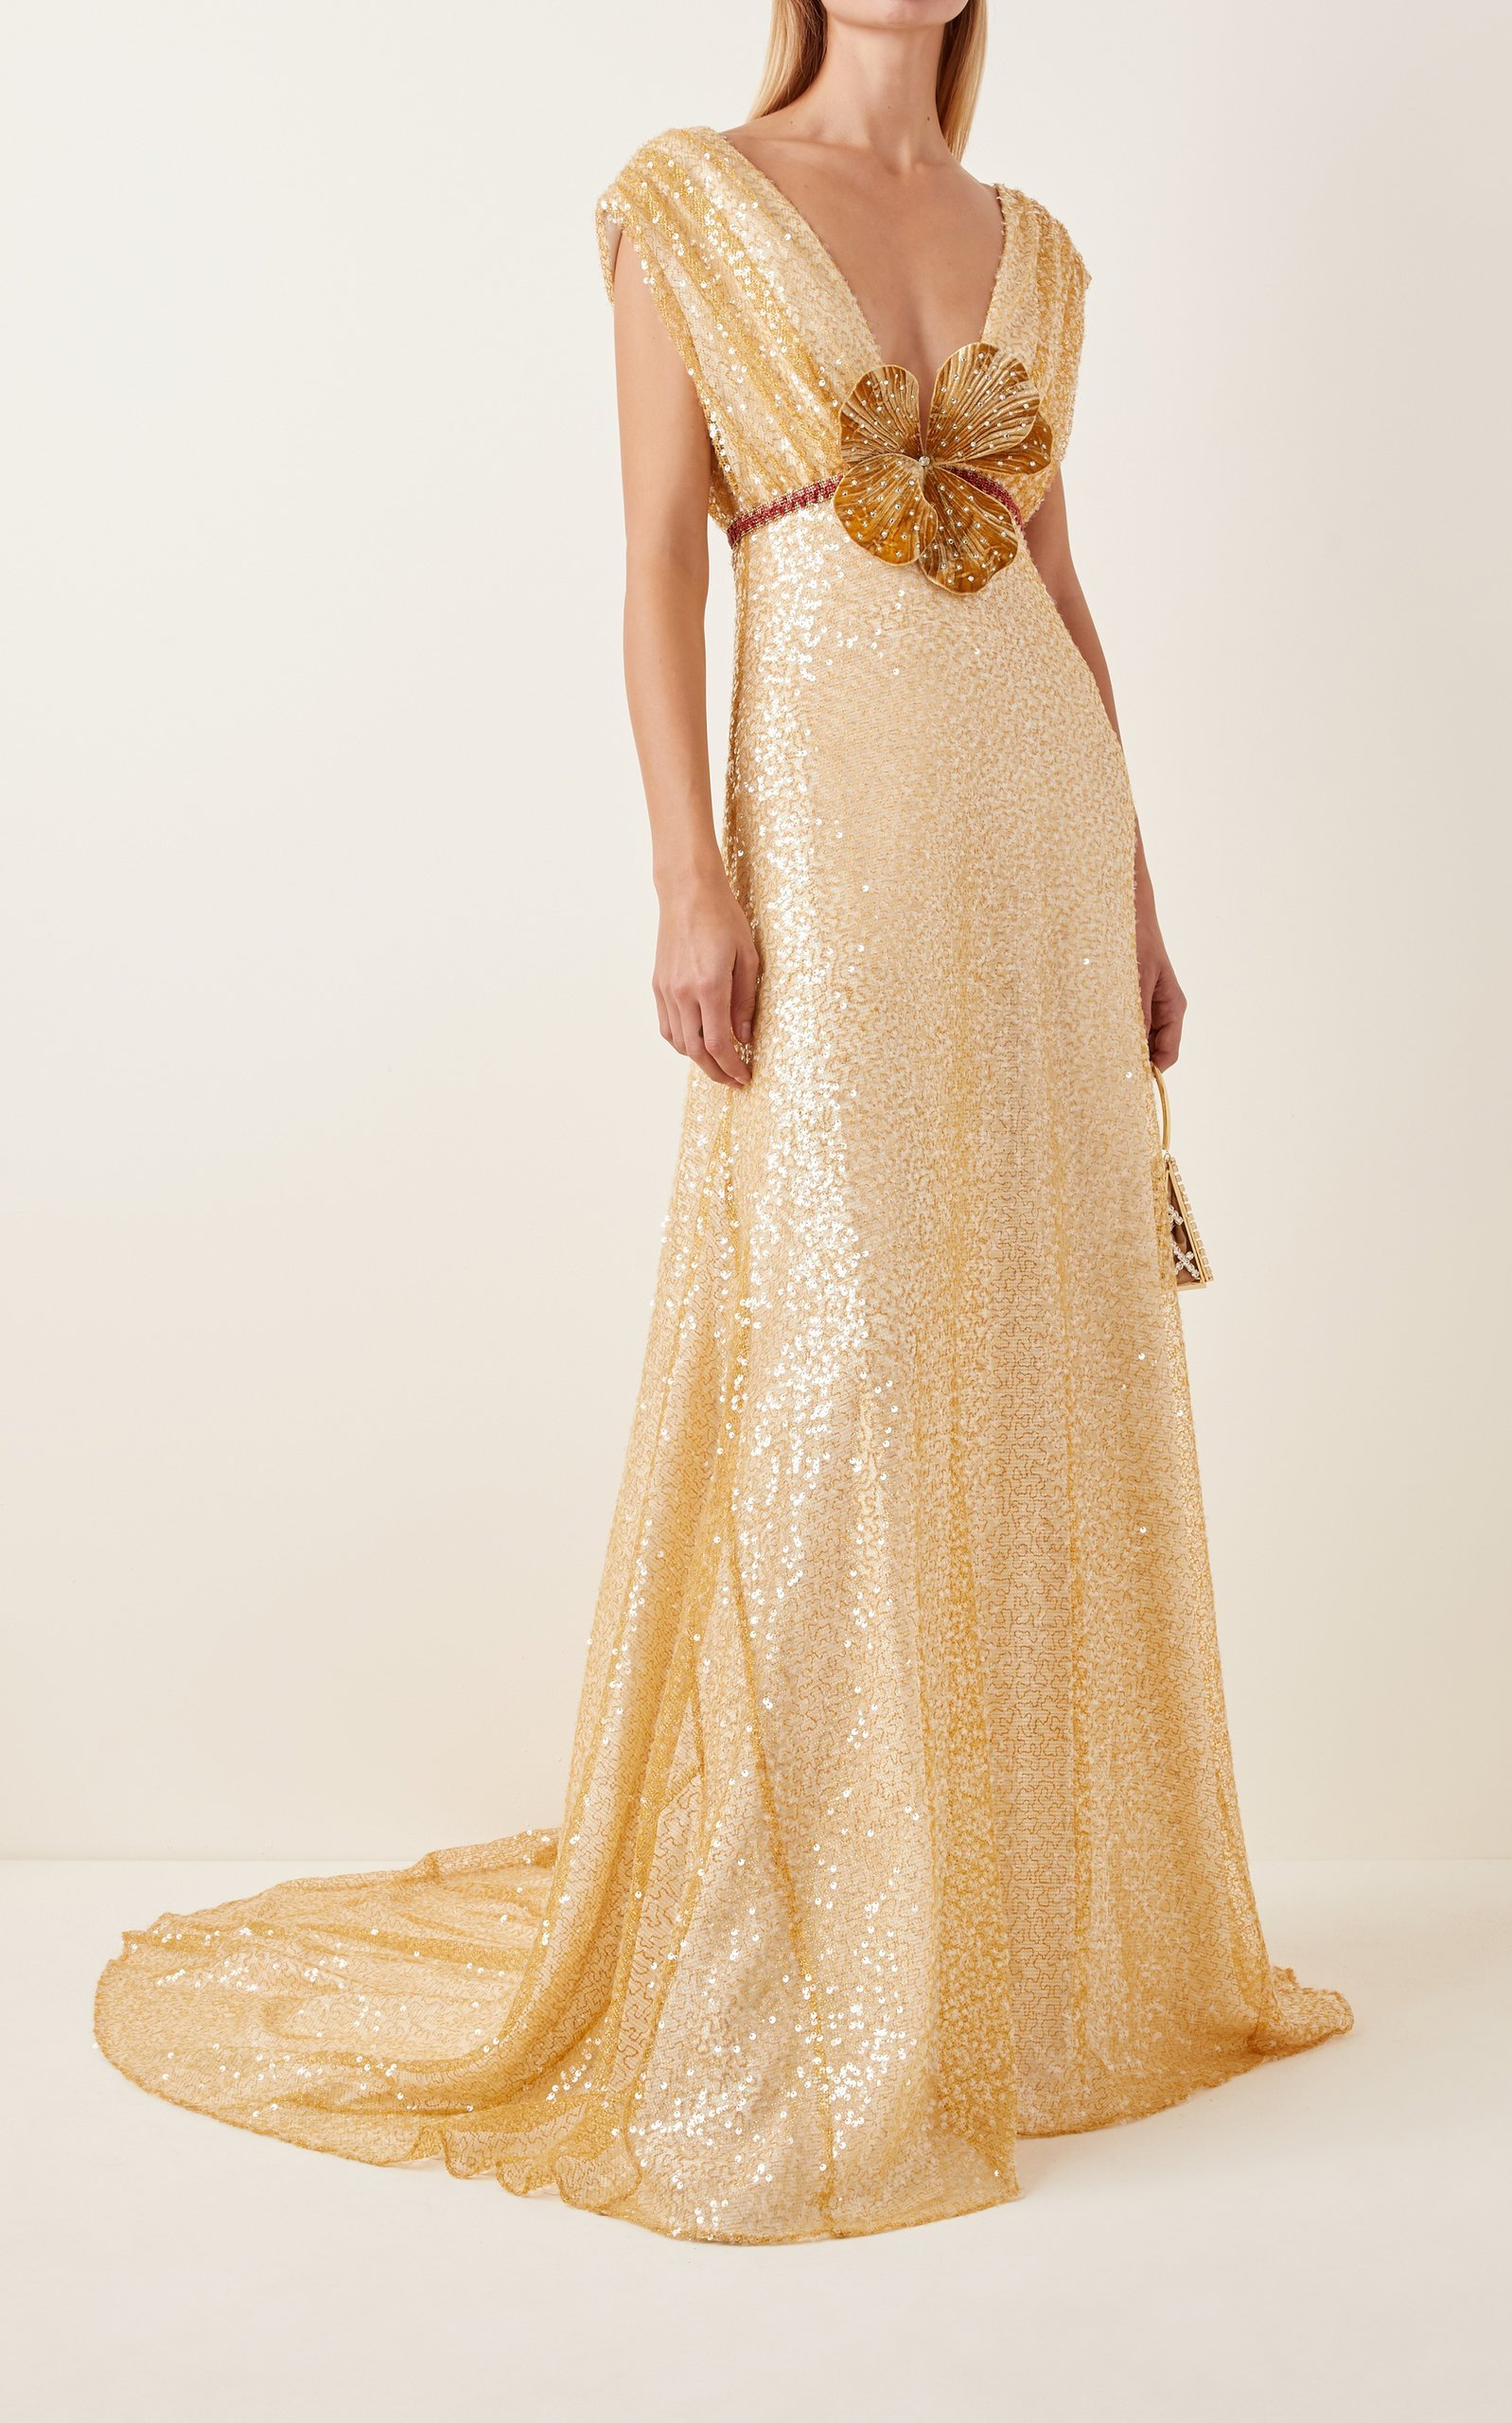 MARKARIAN Crystal-Embellished Embroidered Chiffon Gown